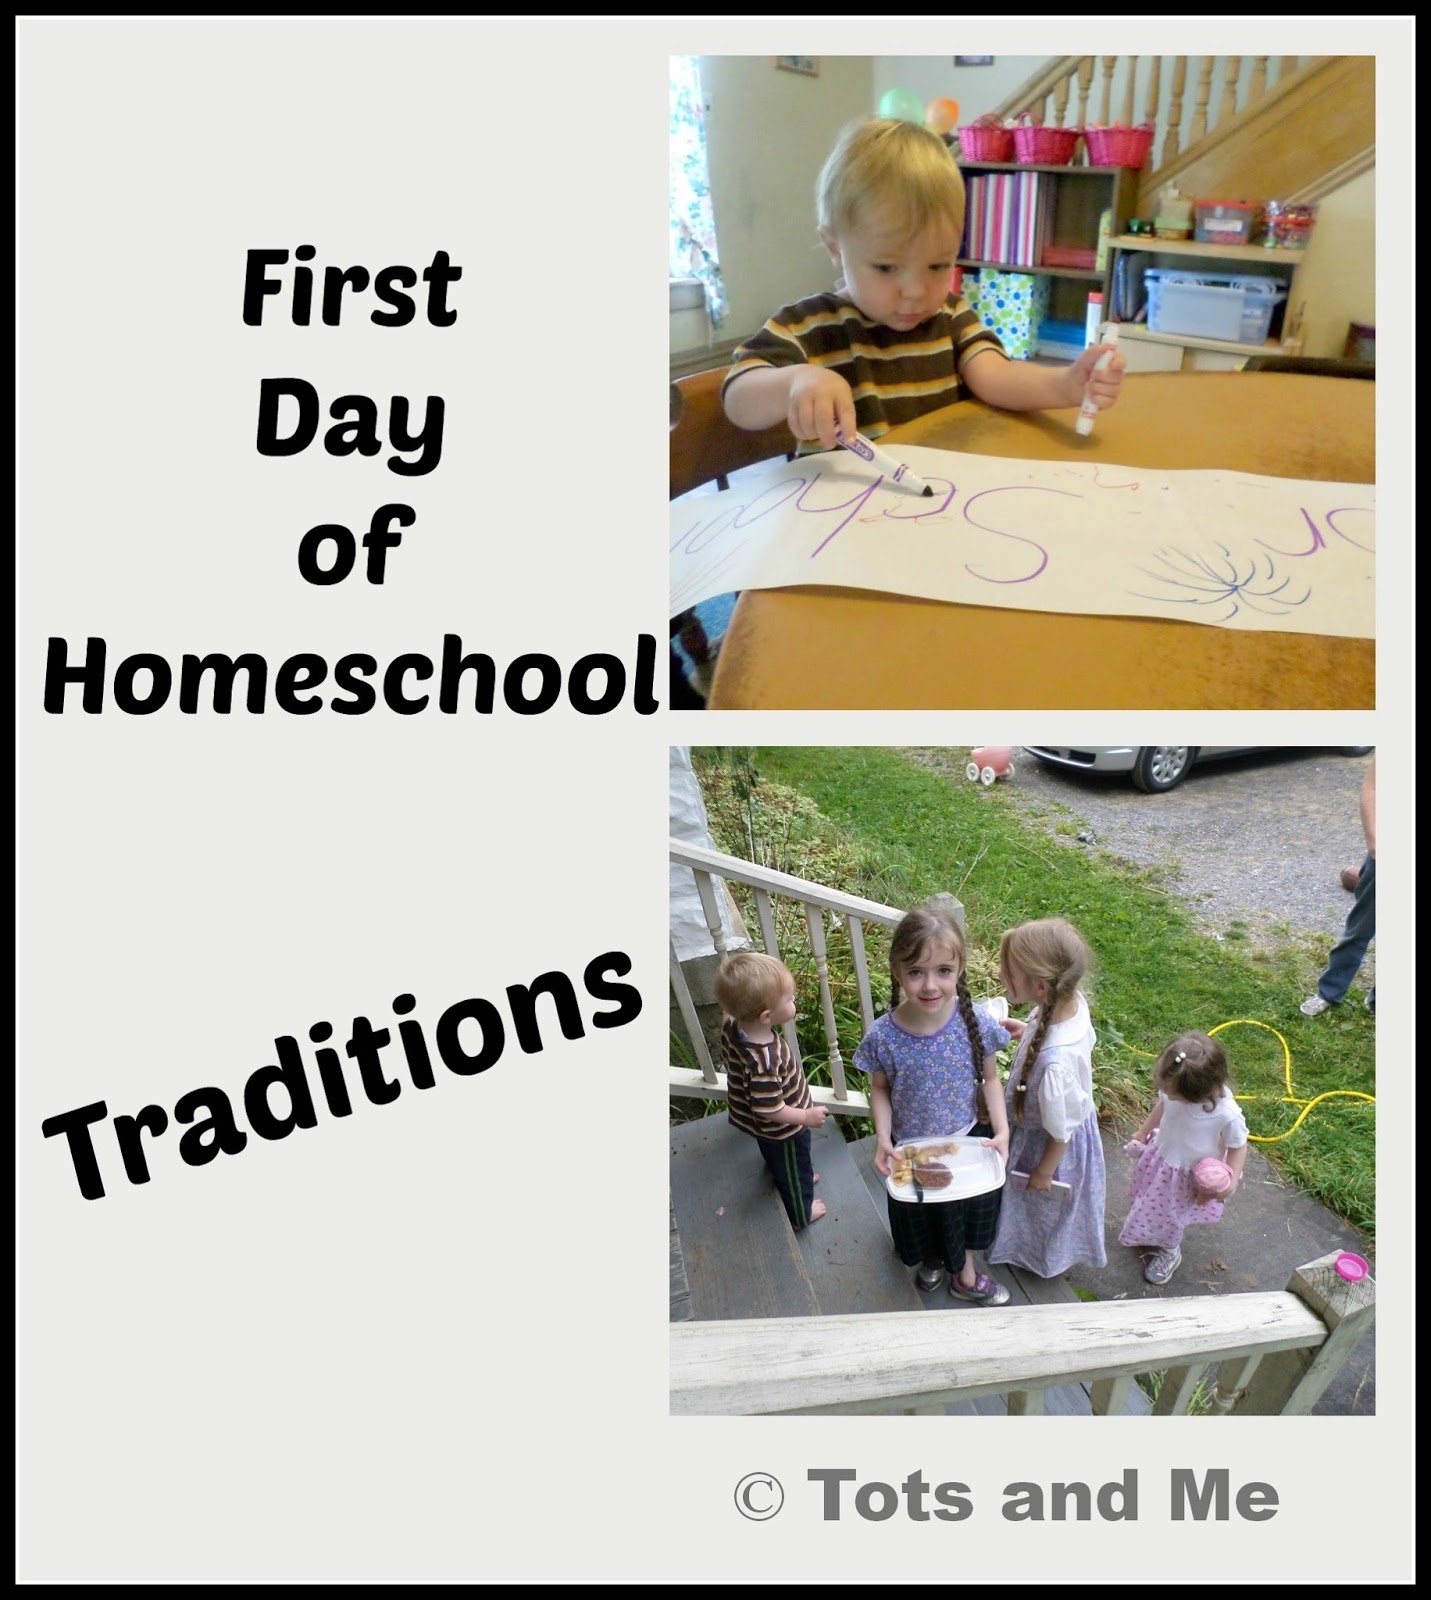 First Day of School Traditions in our Homeschool